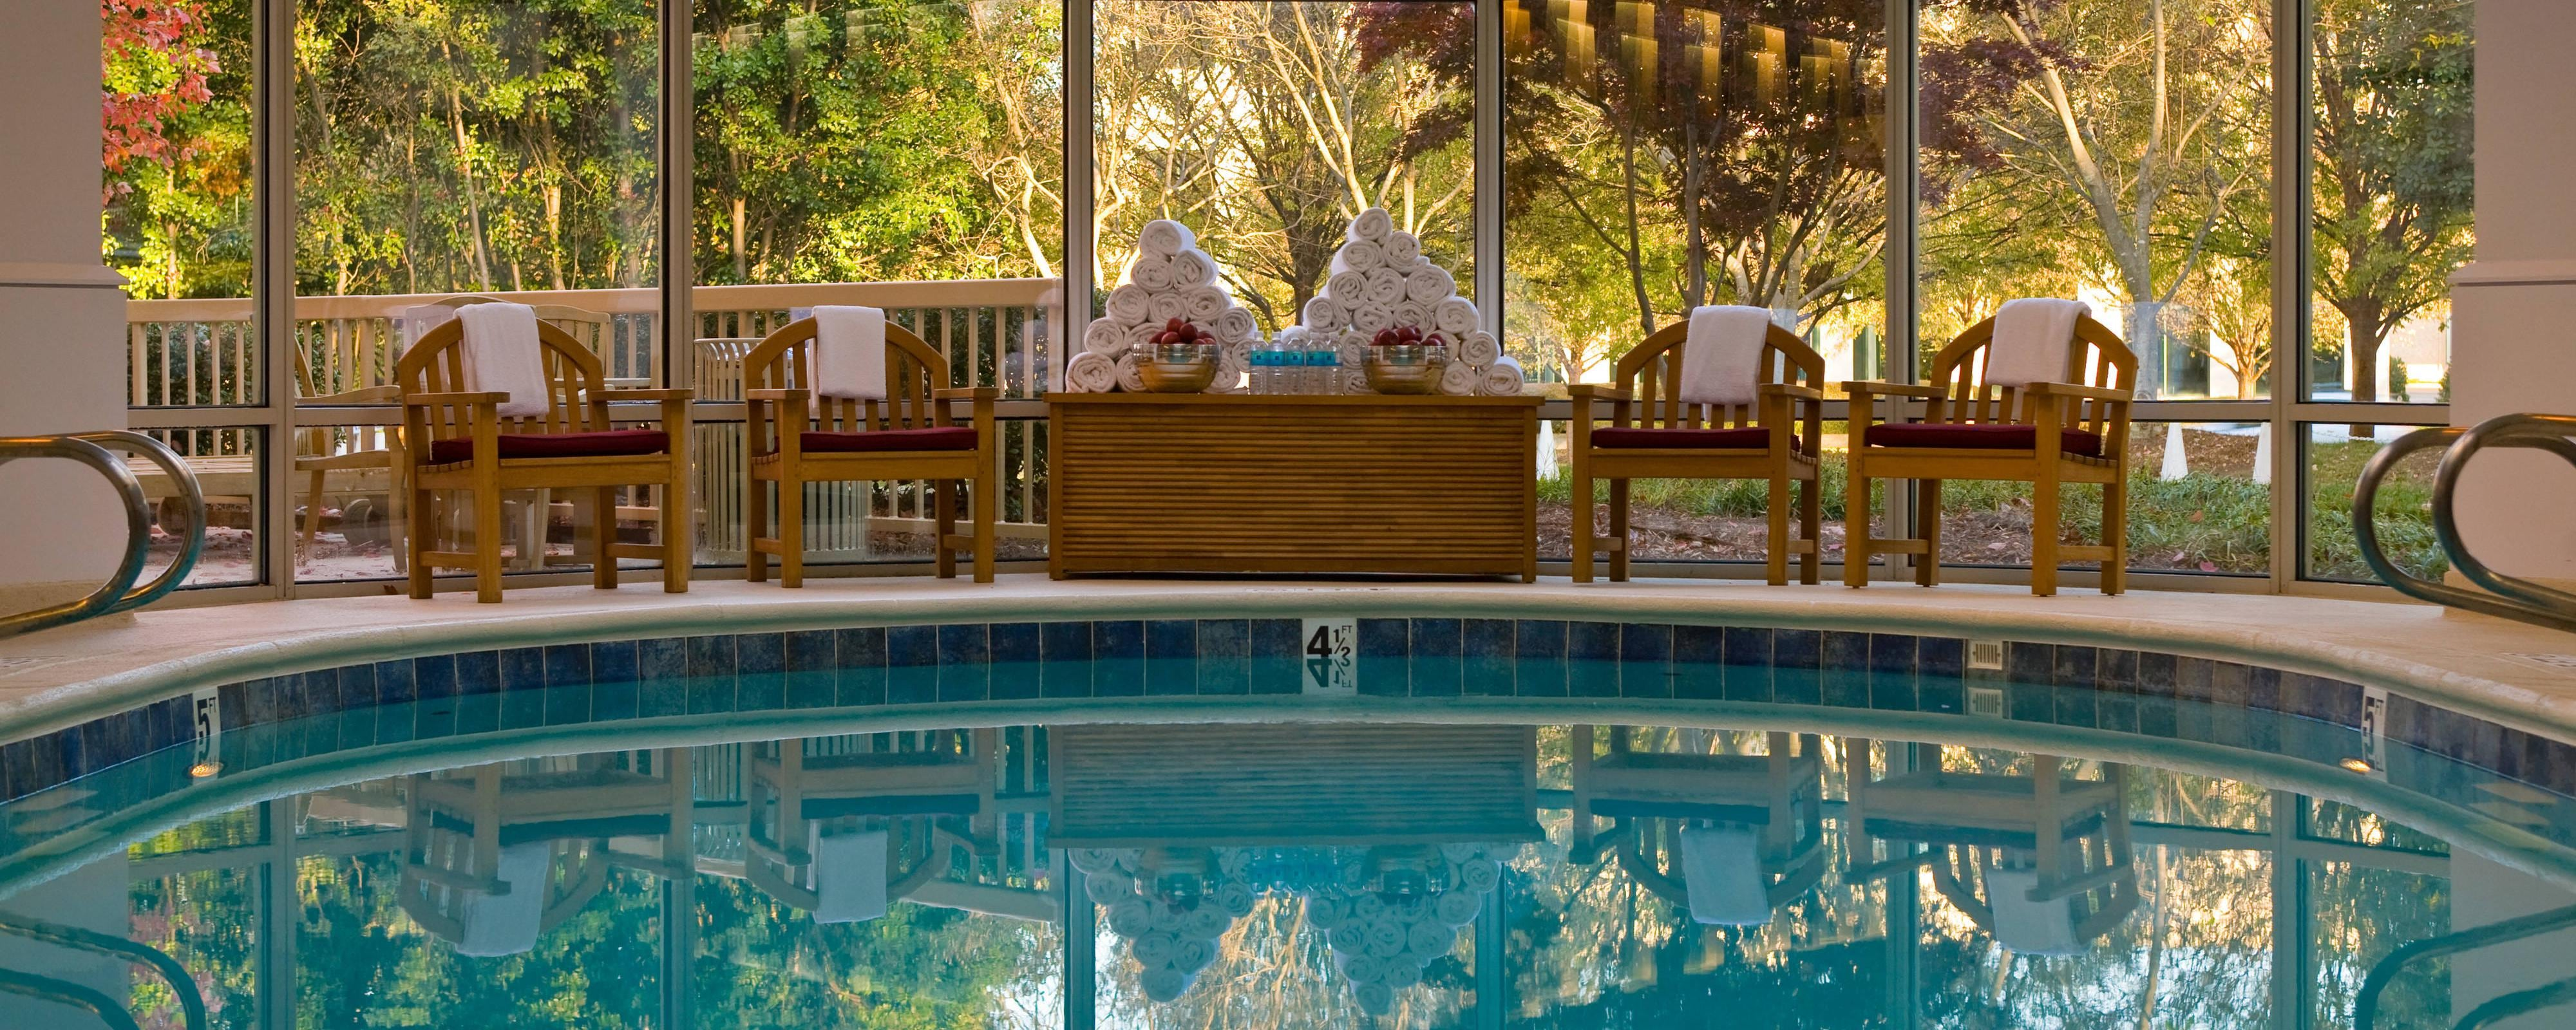 Hotel with indoor pool charlotte nc renaissance charlotte southpark hotel for Indoor swimming pools charlotte nc